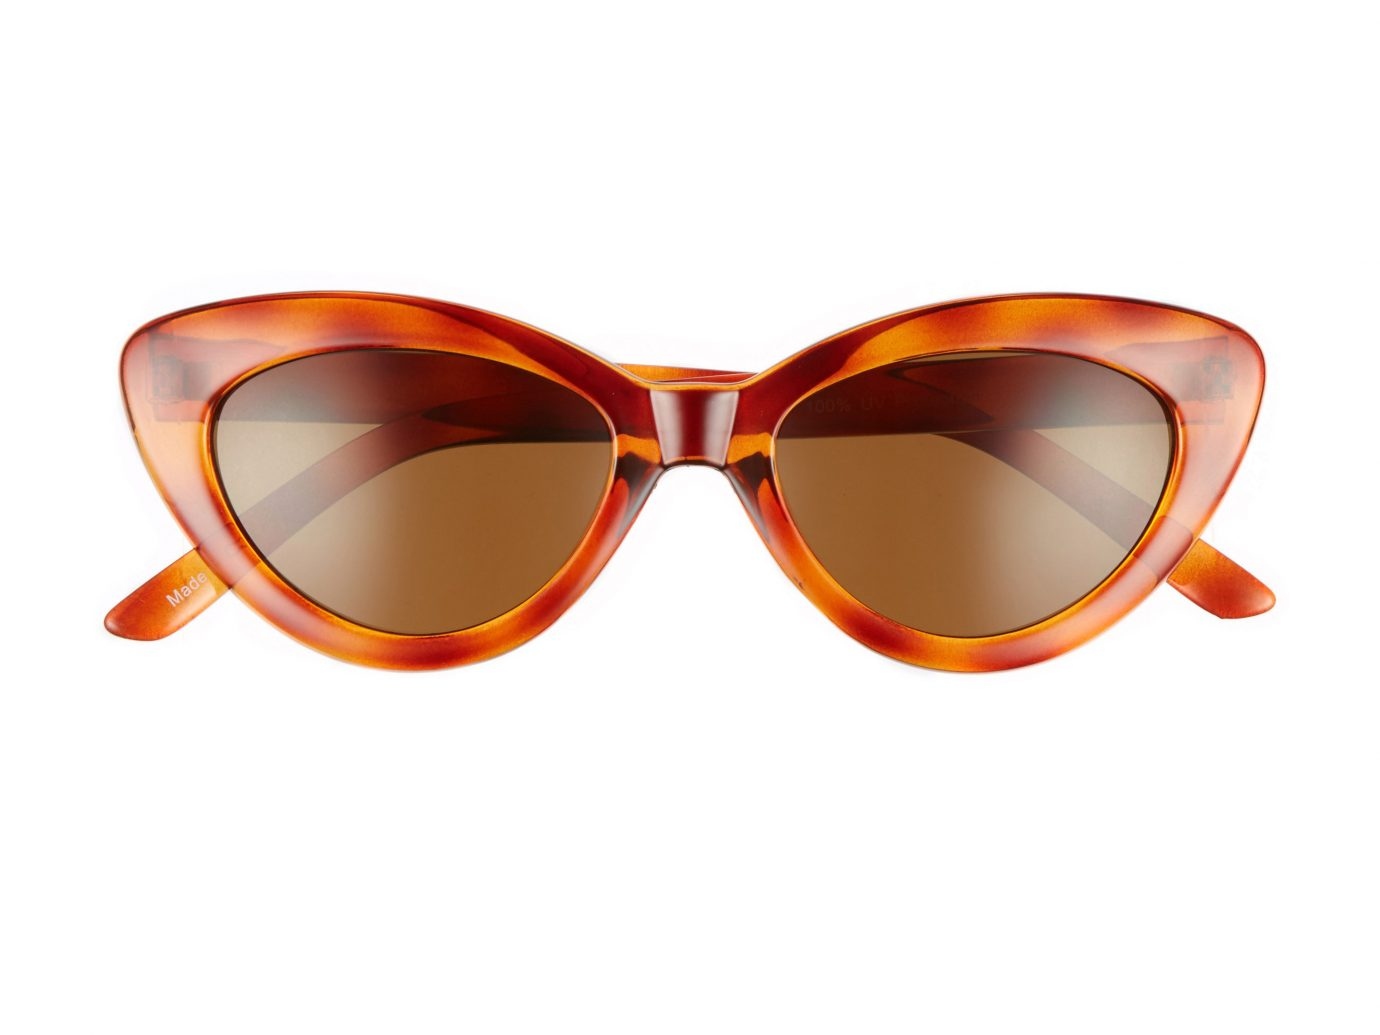 Spring Travel Style + Design Summer Travel Travel Shop spectacles sunglasses accessory eyewear goggles vision care orange glasses product product design caramel color